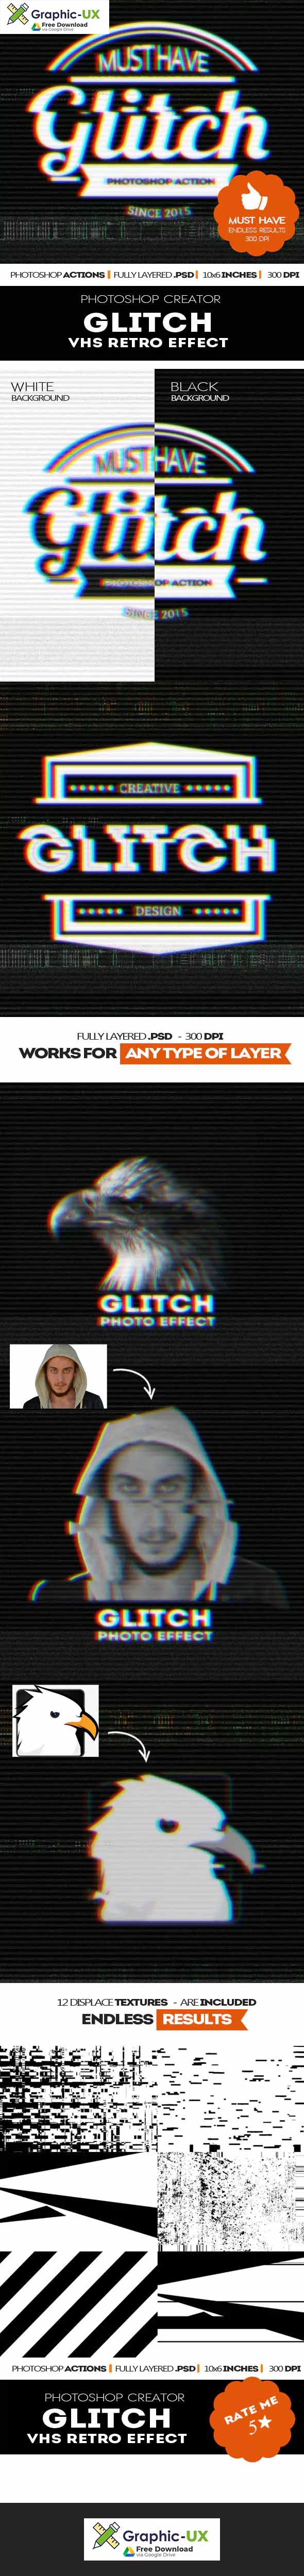 Glitch VHS Corrupt Image Effect Photoshop Actions free